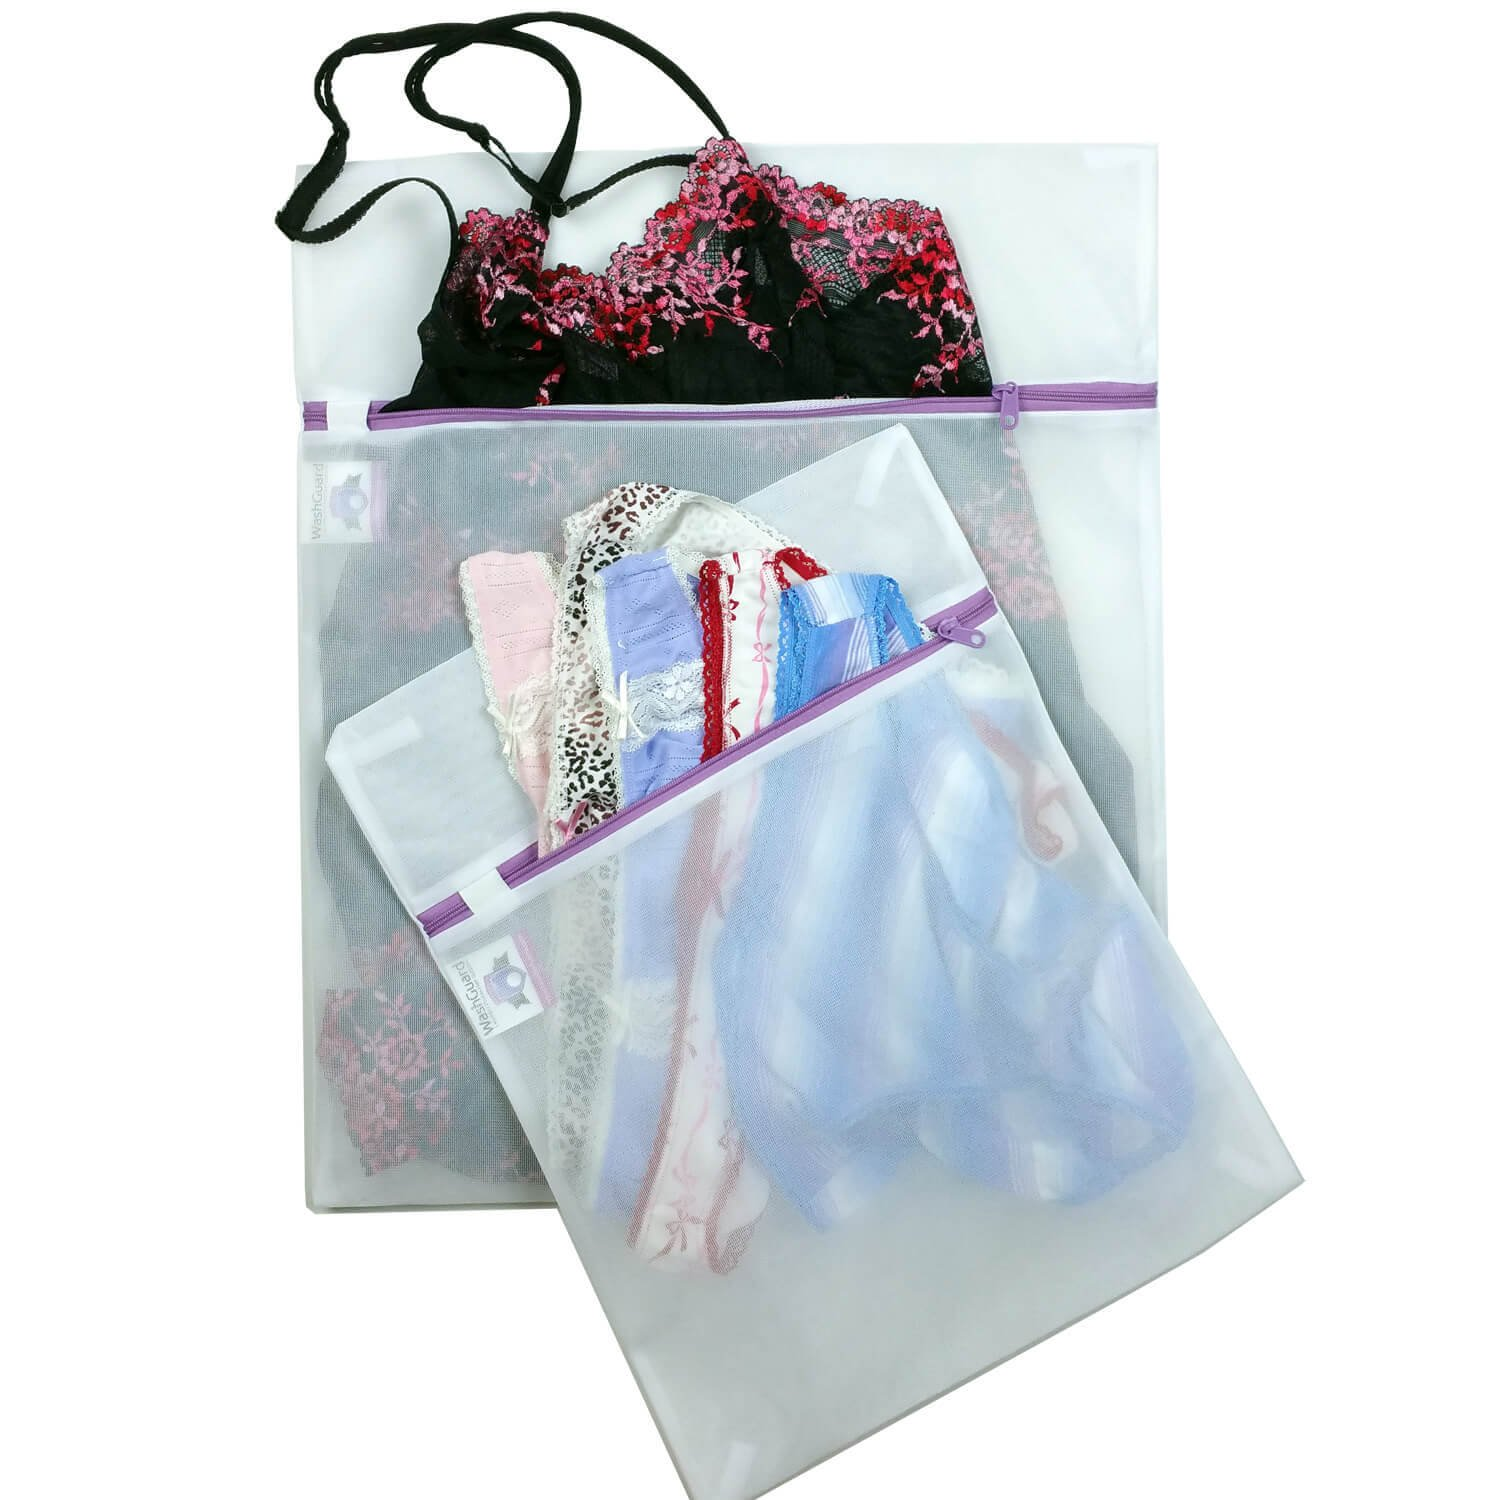 2 Lingerie Bags for Laundry - Premium Zippered Mesh Wash Bag Protects Delicates in The Washer - No More Snags, Knotting or Napping - 2 Pack (1 Medium + 1 Large)